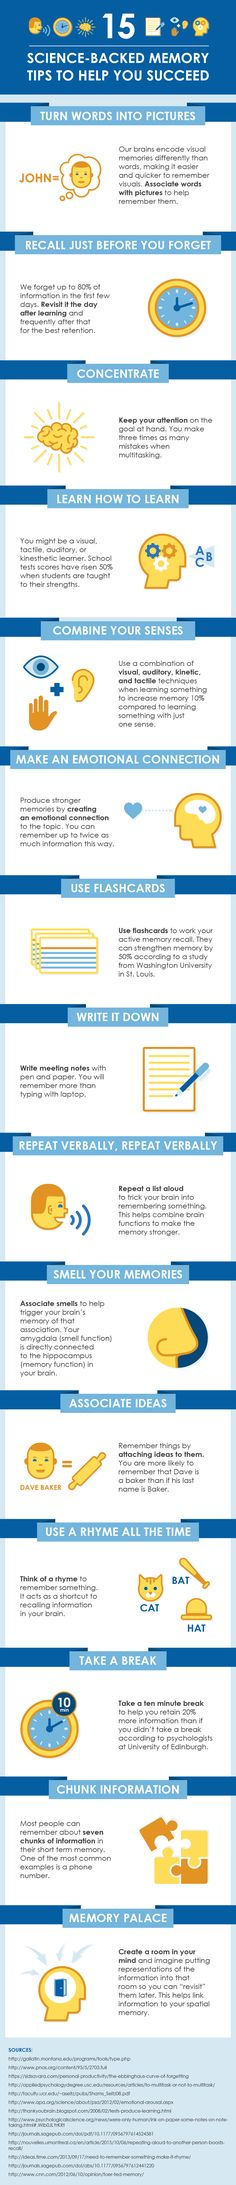 15 Science-Backed Memory Tips to Help You Succeed #Infographic